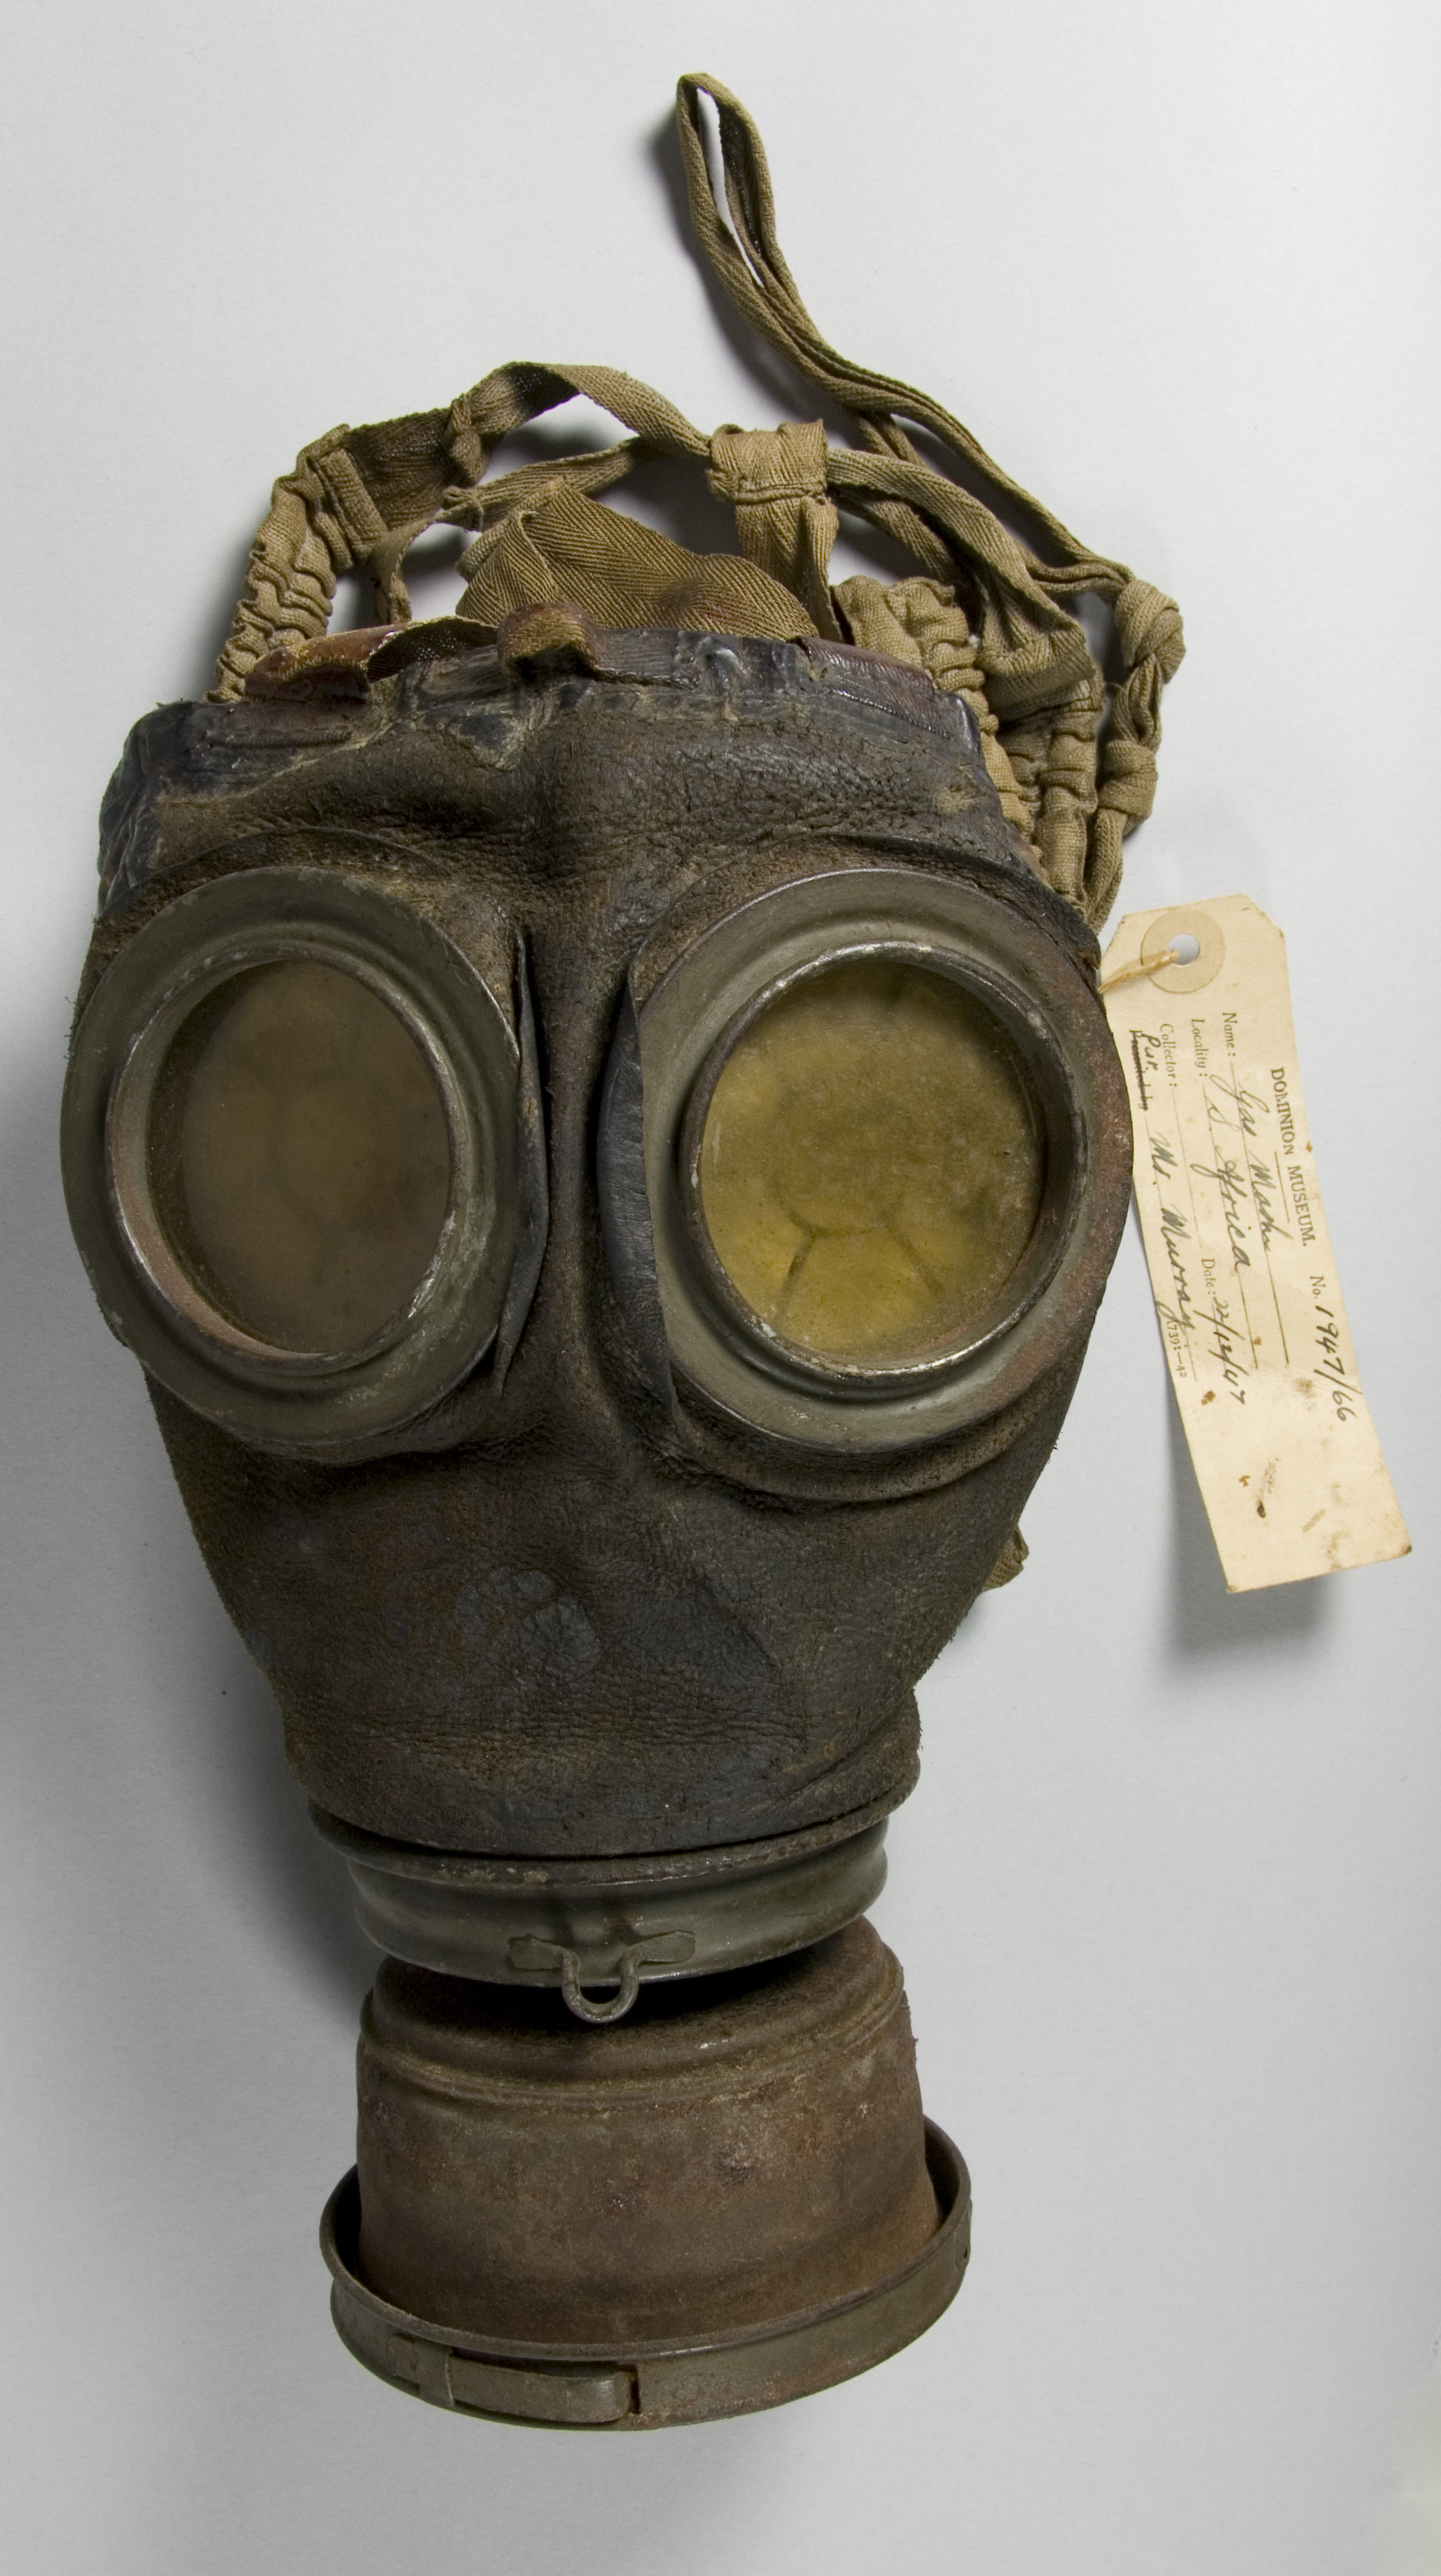 Gas masks may have asbestos fibres in the filters. Gas mask (Lederschutzmasken), 1917-1918, Germany, maker unknown.